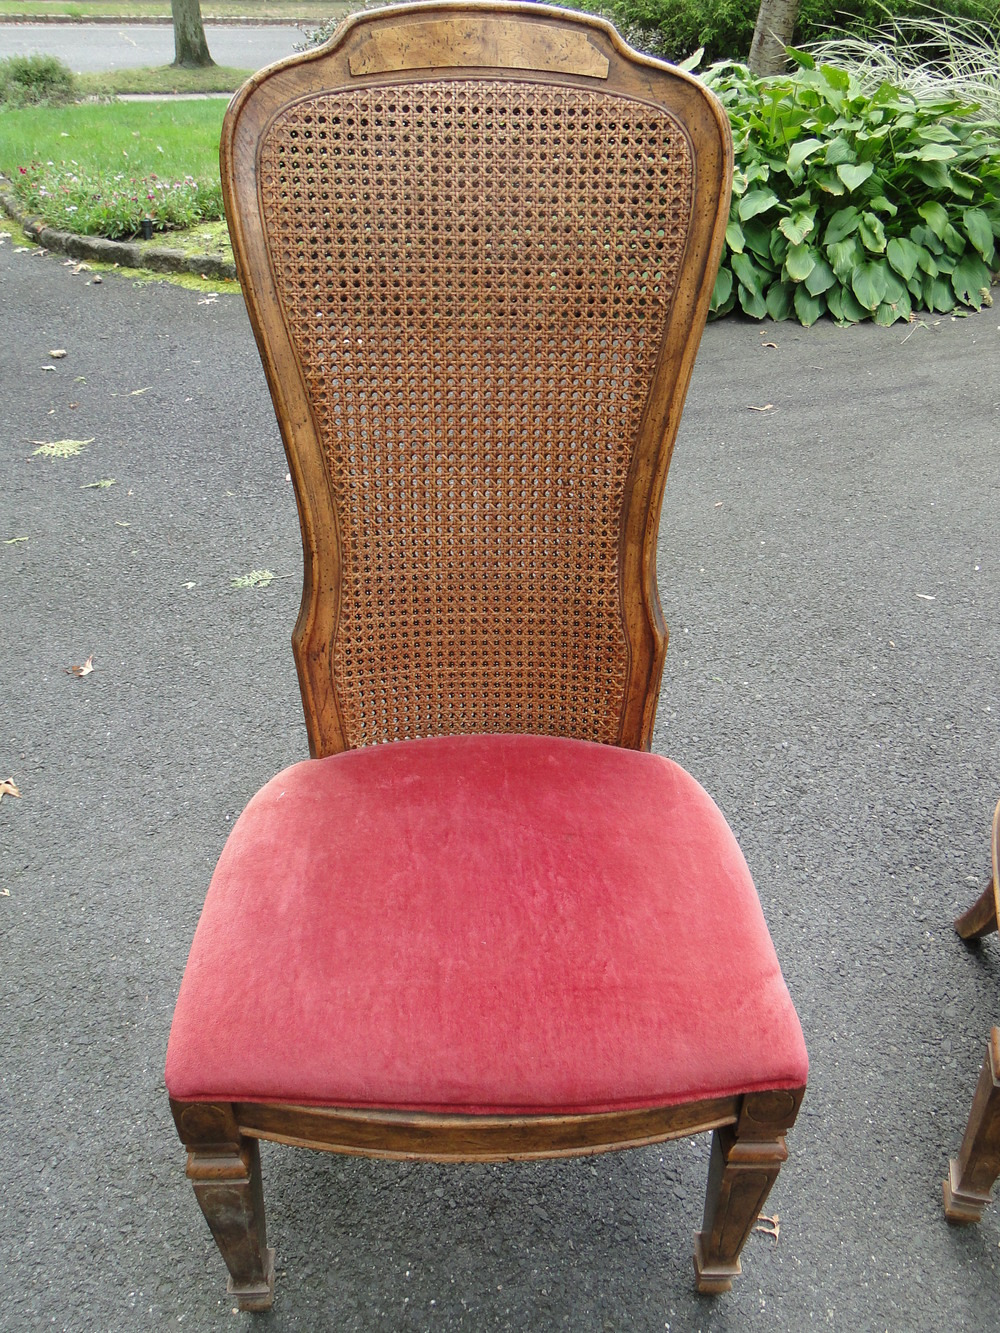 """Before"" photo of chair"